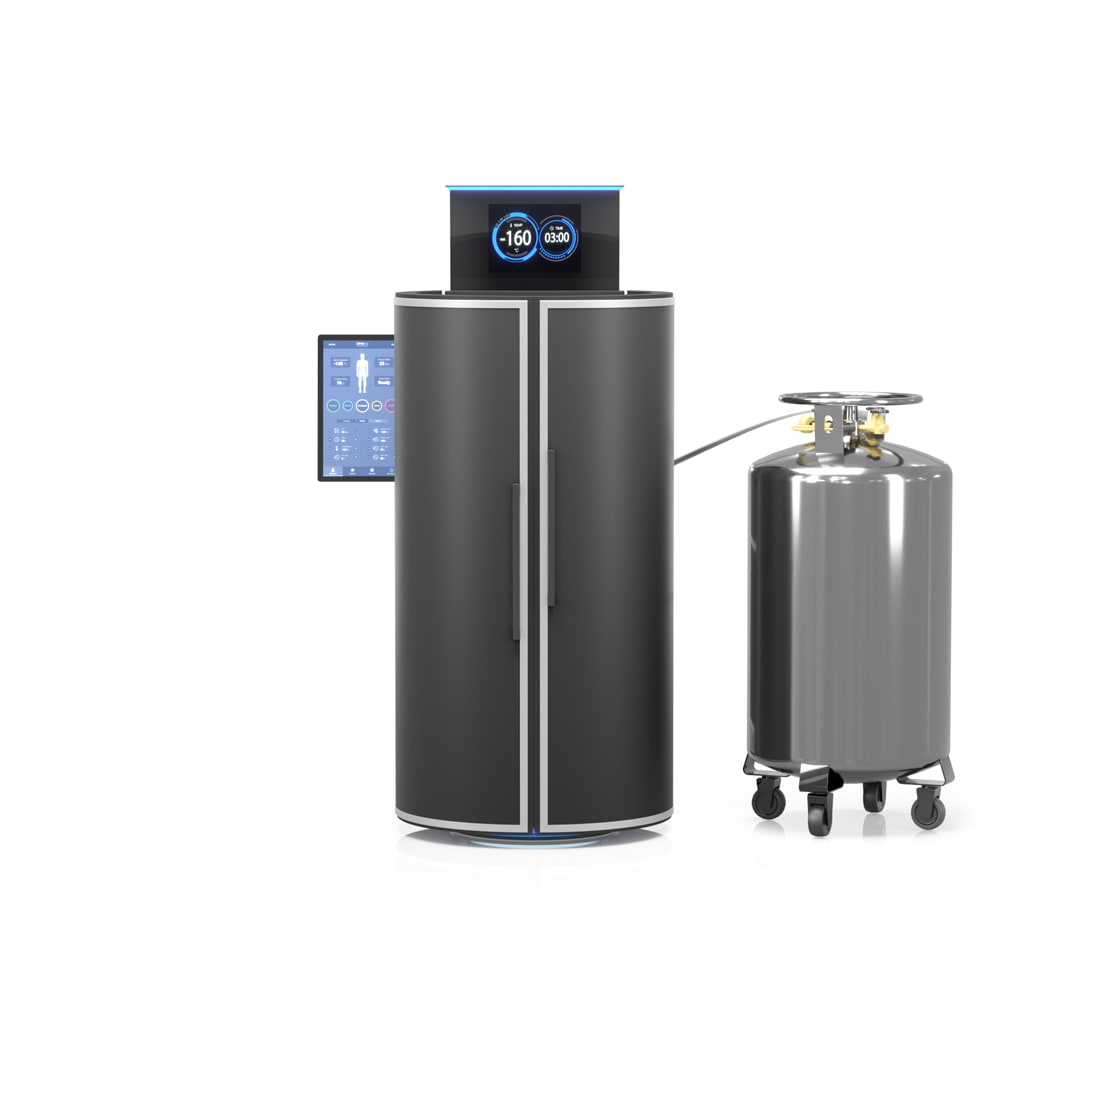 Cryotherapy machine with pressurized tank vessel